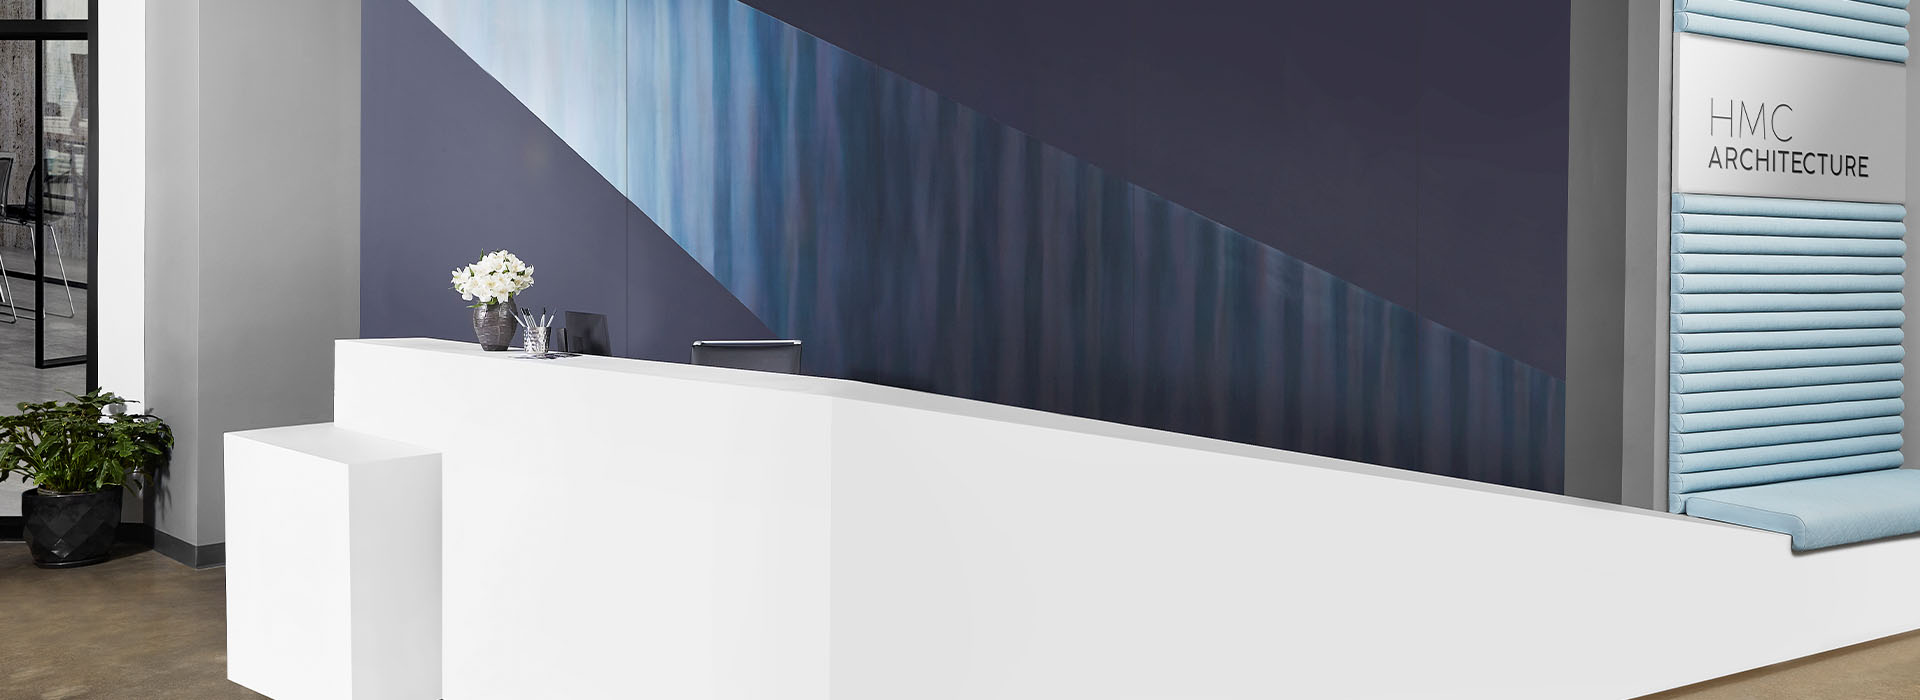 408 Luna Brite White reception desk with M9421 Dark Rolled Steel and 5323-AN Nocturne wall